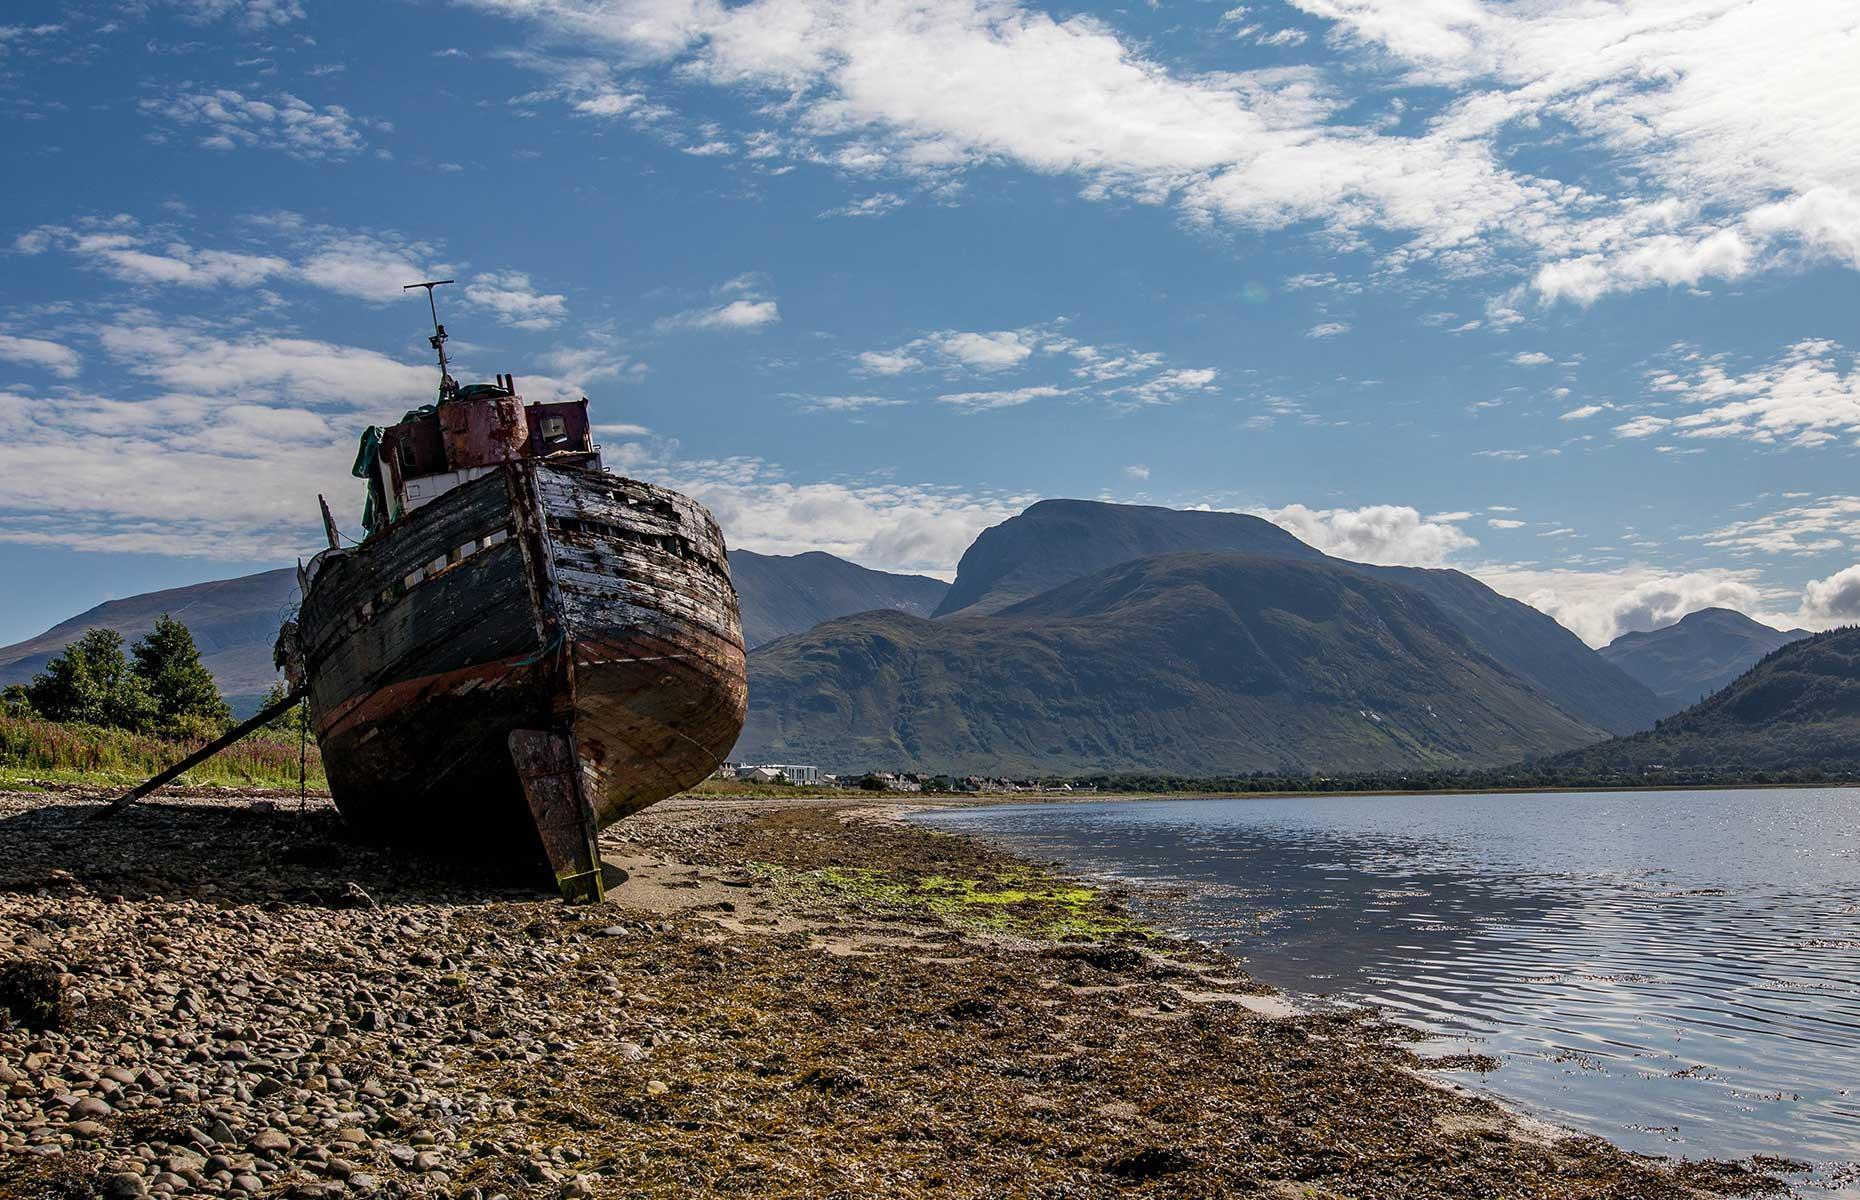 Slide 5 of 35: Today photographers come from around the world to capture what has become known as the Corpach Wreck – it can be pictured with the highest mountain in Britain, Ben Nevis, in the background. Now discover 9 more places you must see in the Scottish Highlands and Islands.